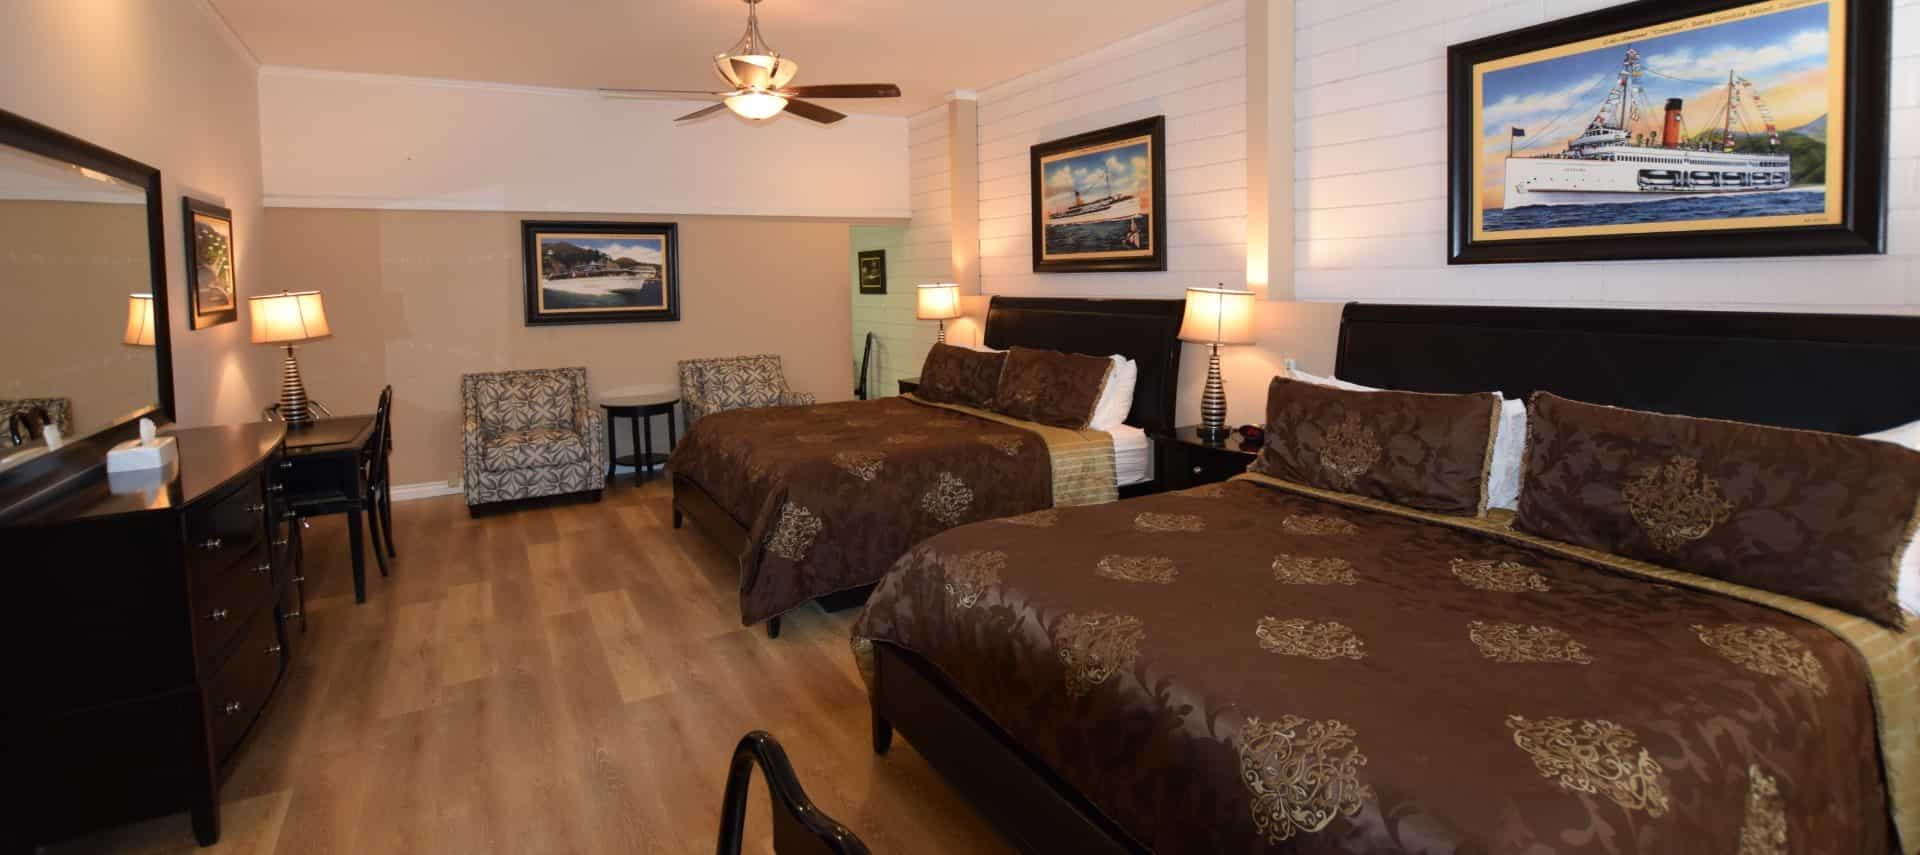 Large bedroom with dark brown furniture, two king beds with dark brown bedding, and two upholstered chairs